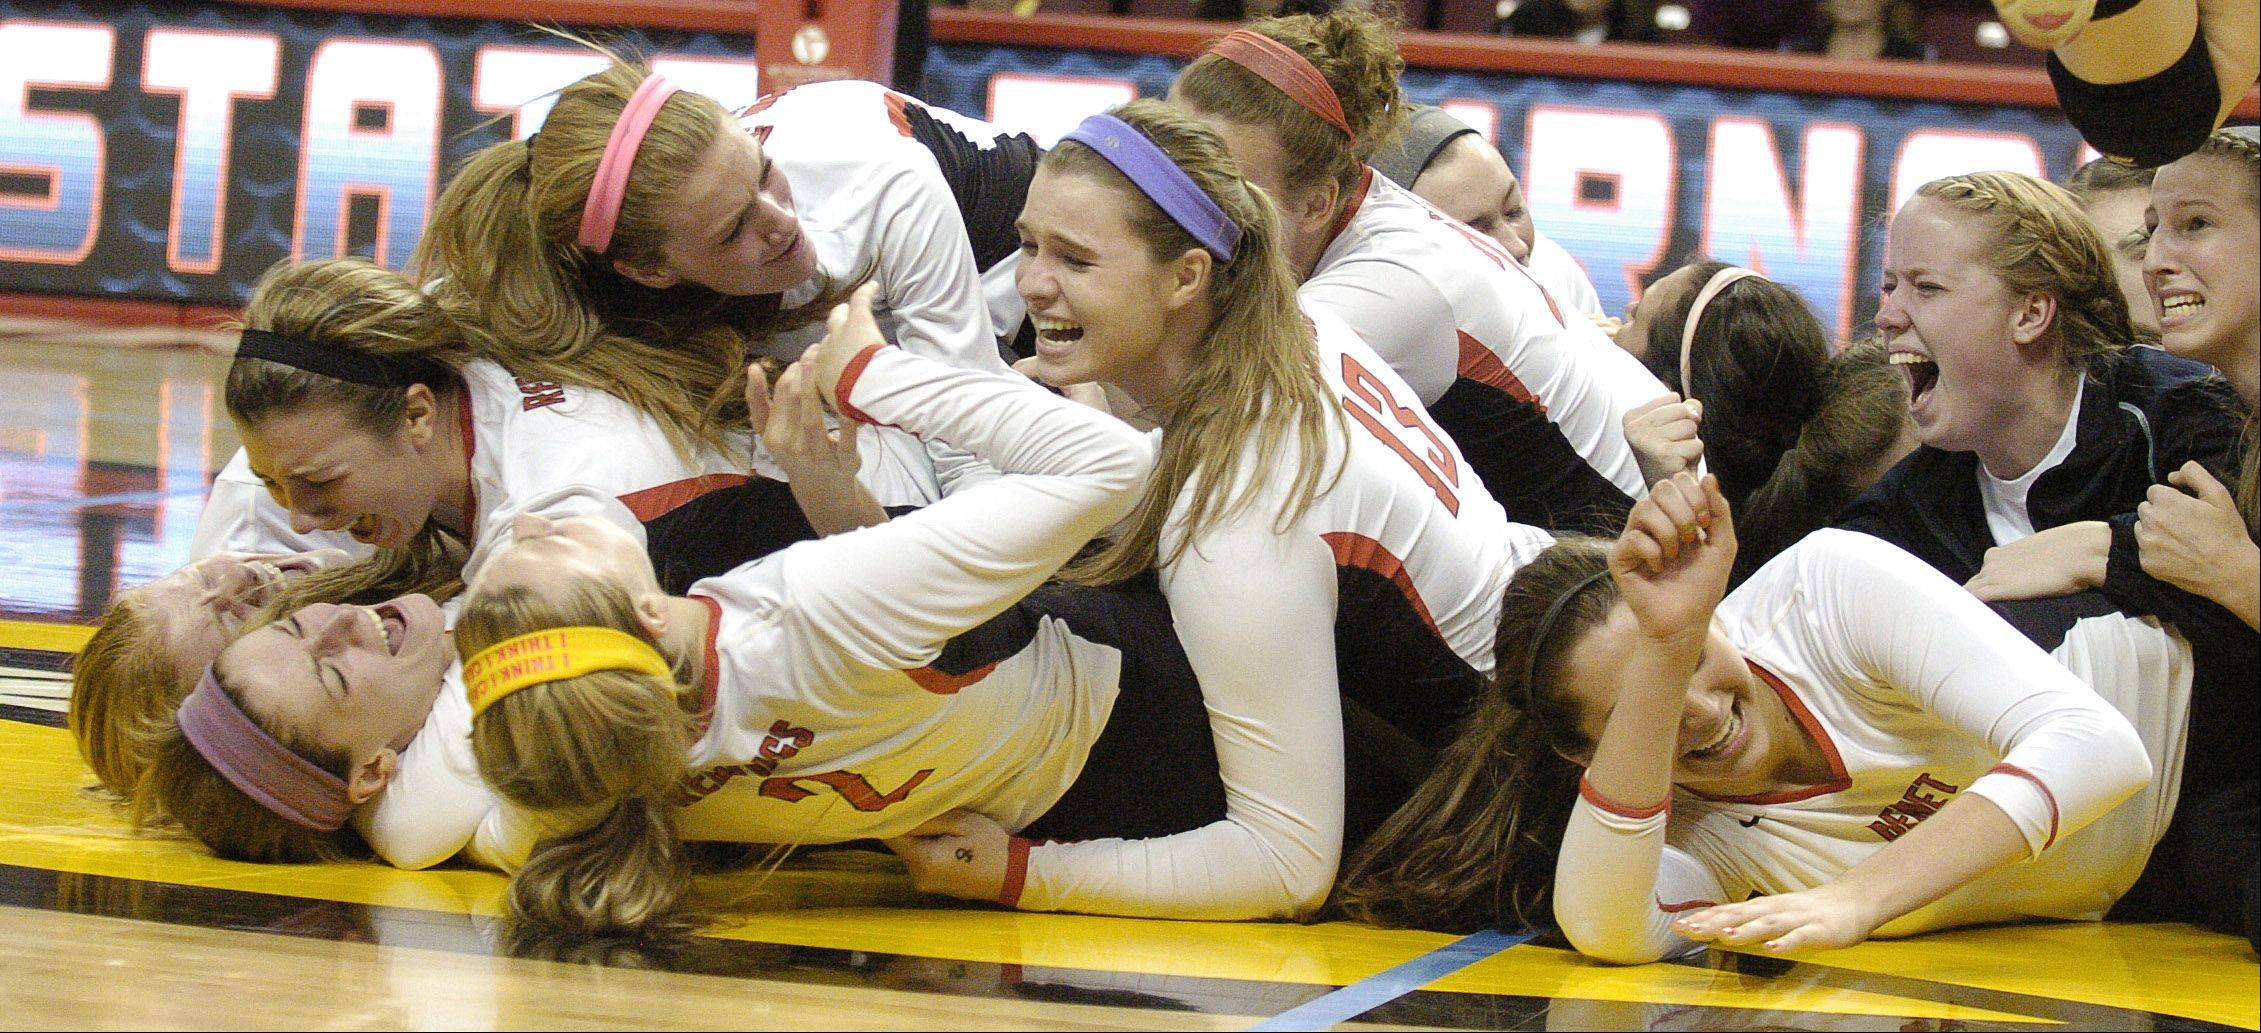 Benet players hit the floor in celebration after winning the Class 4A girls volleyball championship game Saturday.